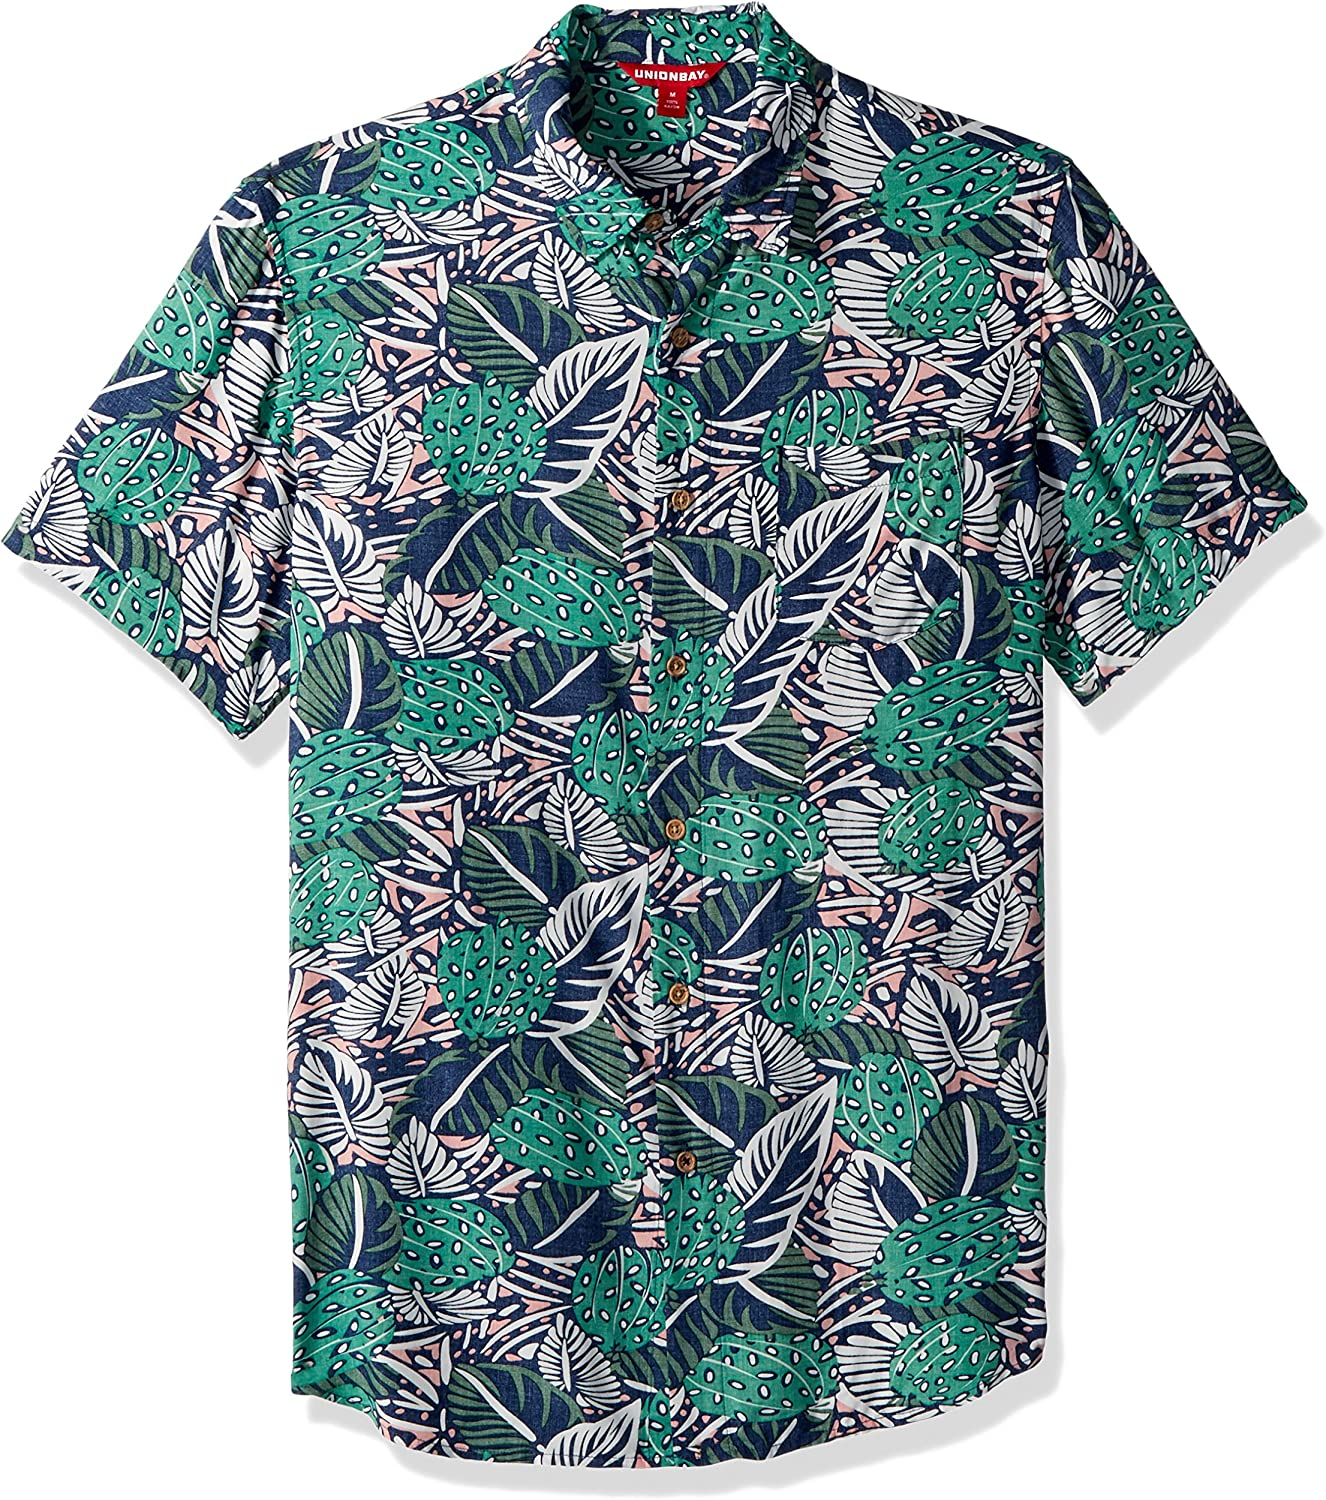 UNIONBAY Mens Classic Short Sleeve Rayon Button-up Woven Shirt